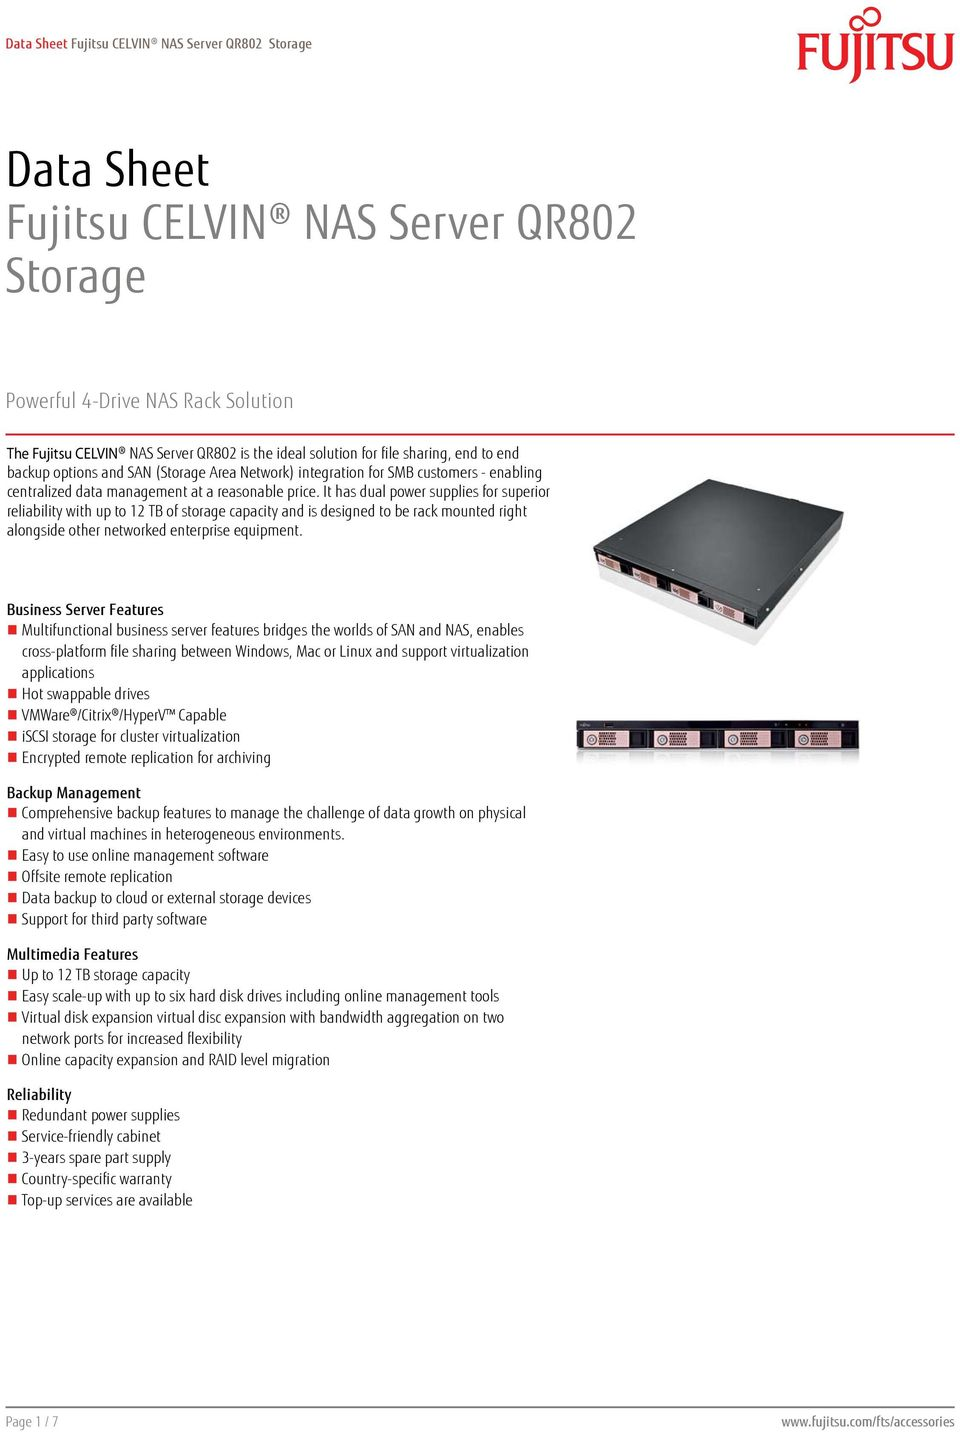 It has dual power supplies for superior reliability with up to 12 TB of storage capacity and is designed to be rack mounted right alongside other networked enterprise equipment.